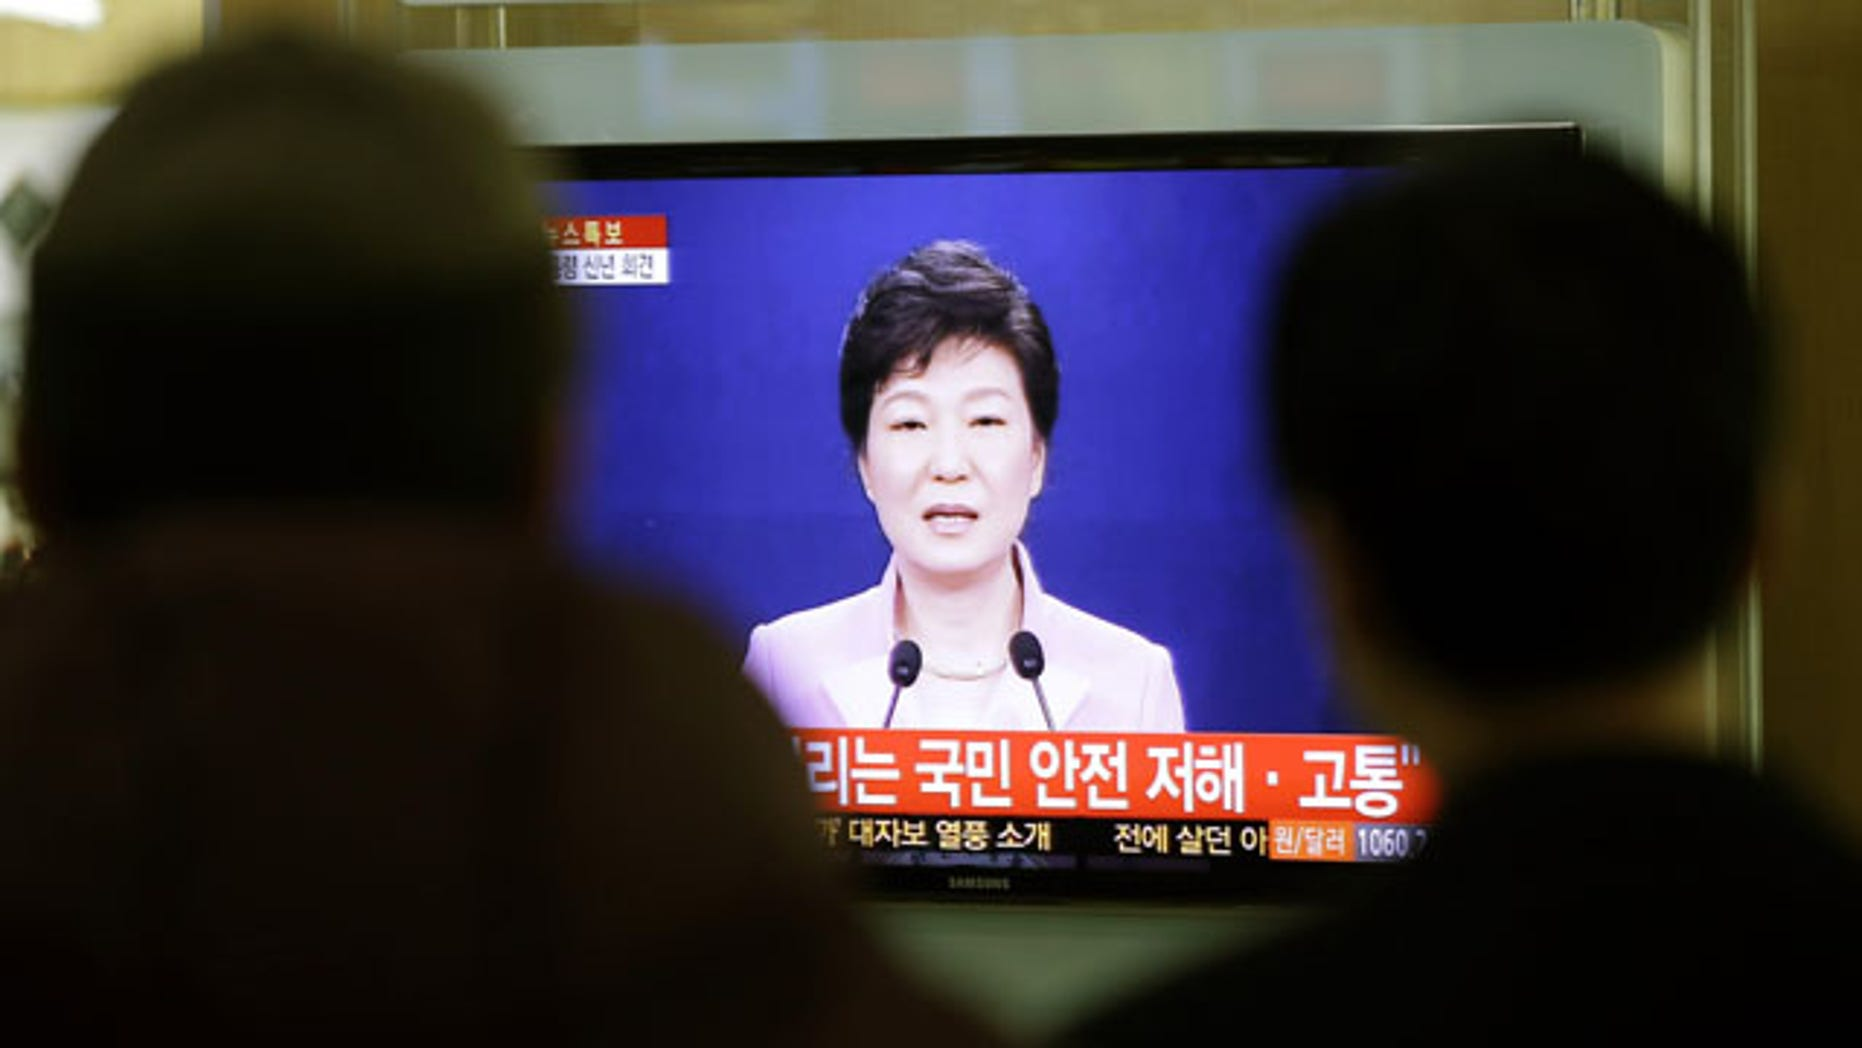 January 6, 2014: People watch a television program airing South Korean President Park Geun-hye's New Year's speech to the nation, at the Seoul Train Station. Park called on Monday for resuming reunions of families separated by war, saying it was a chance to improve strained ties between the rival Koreas. (AP Photo/Lee Jin-man)